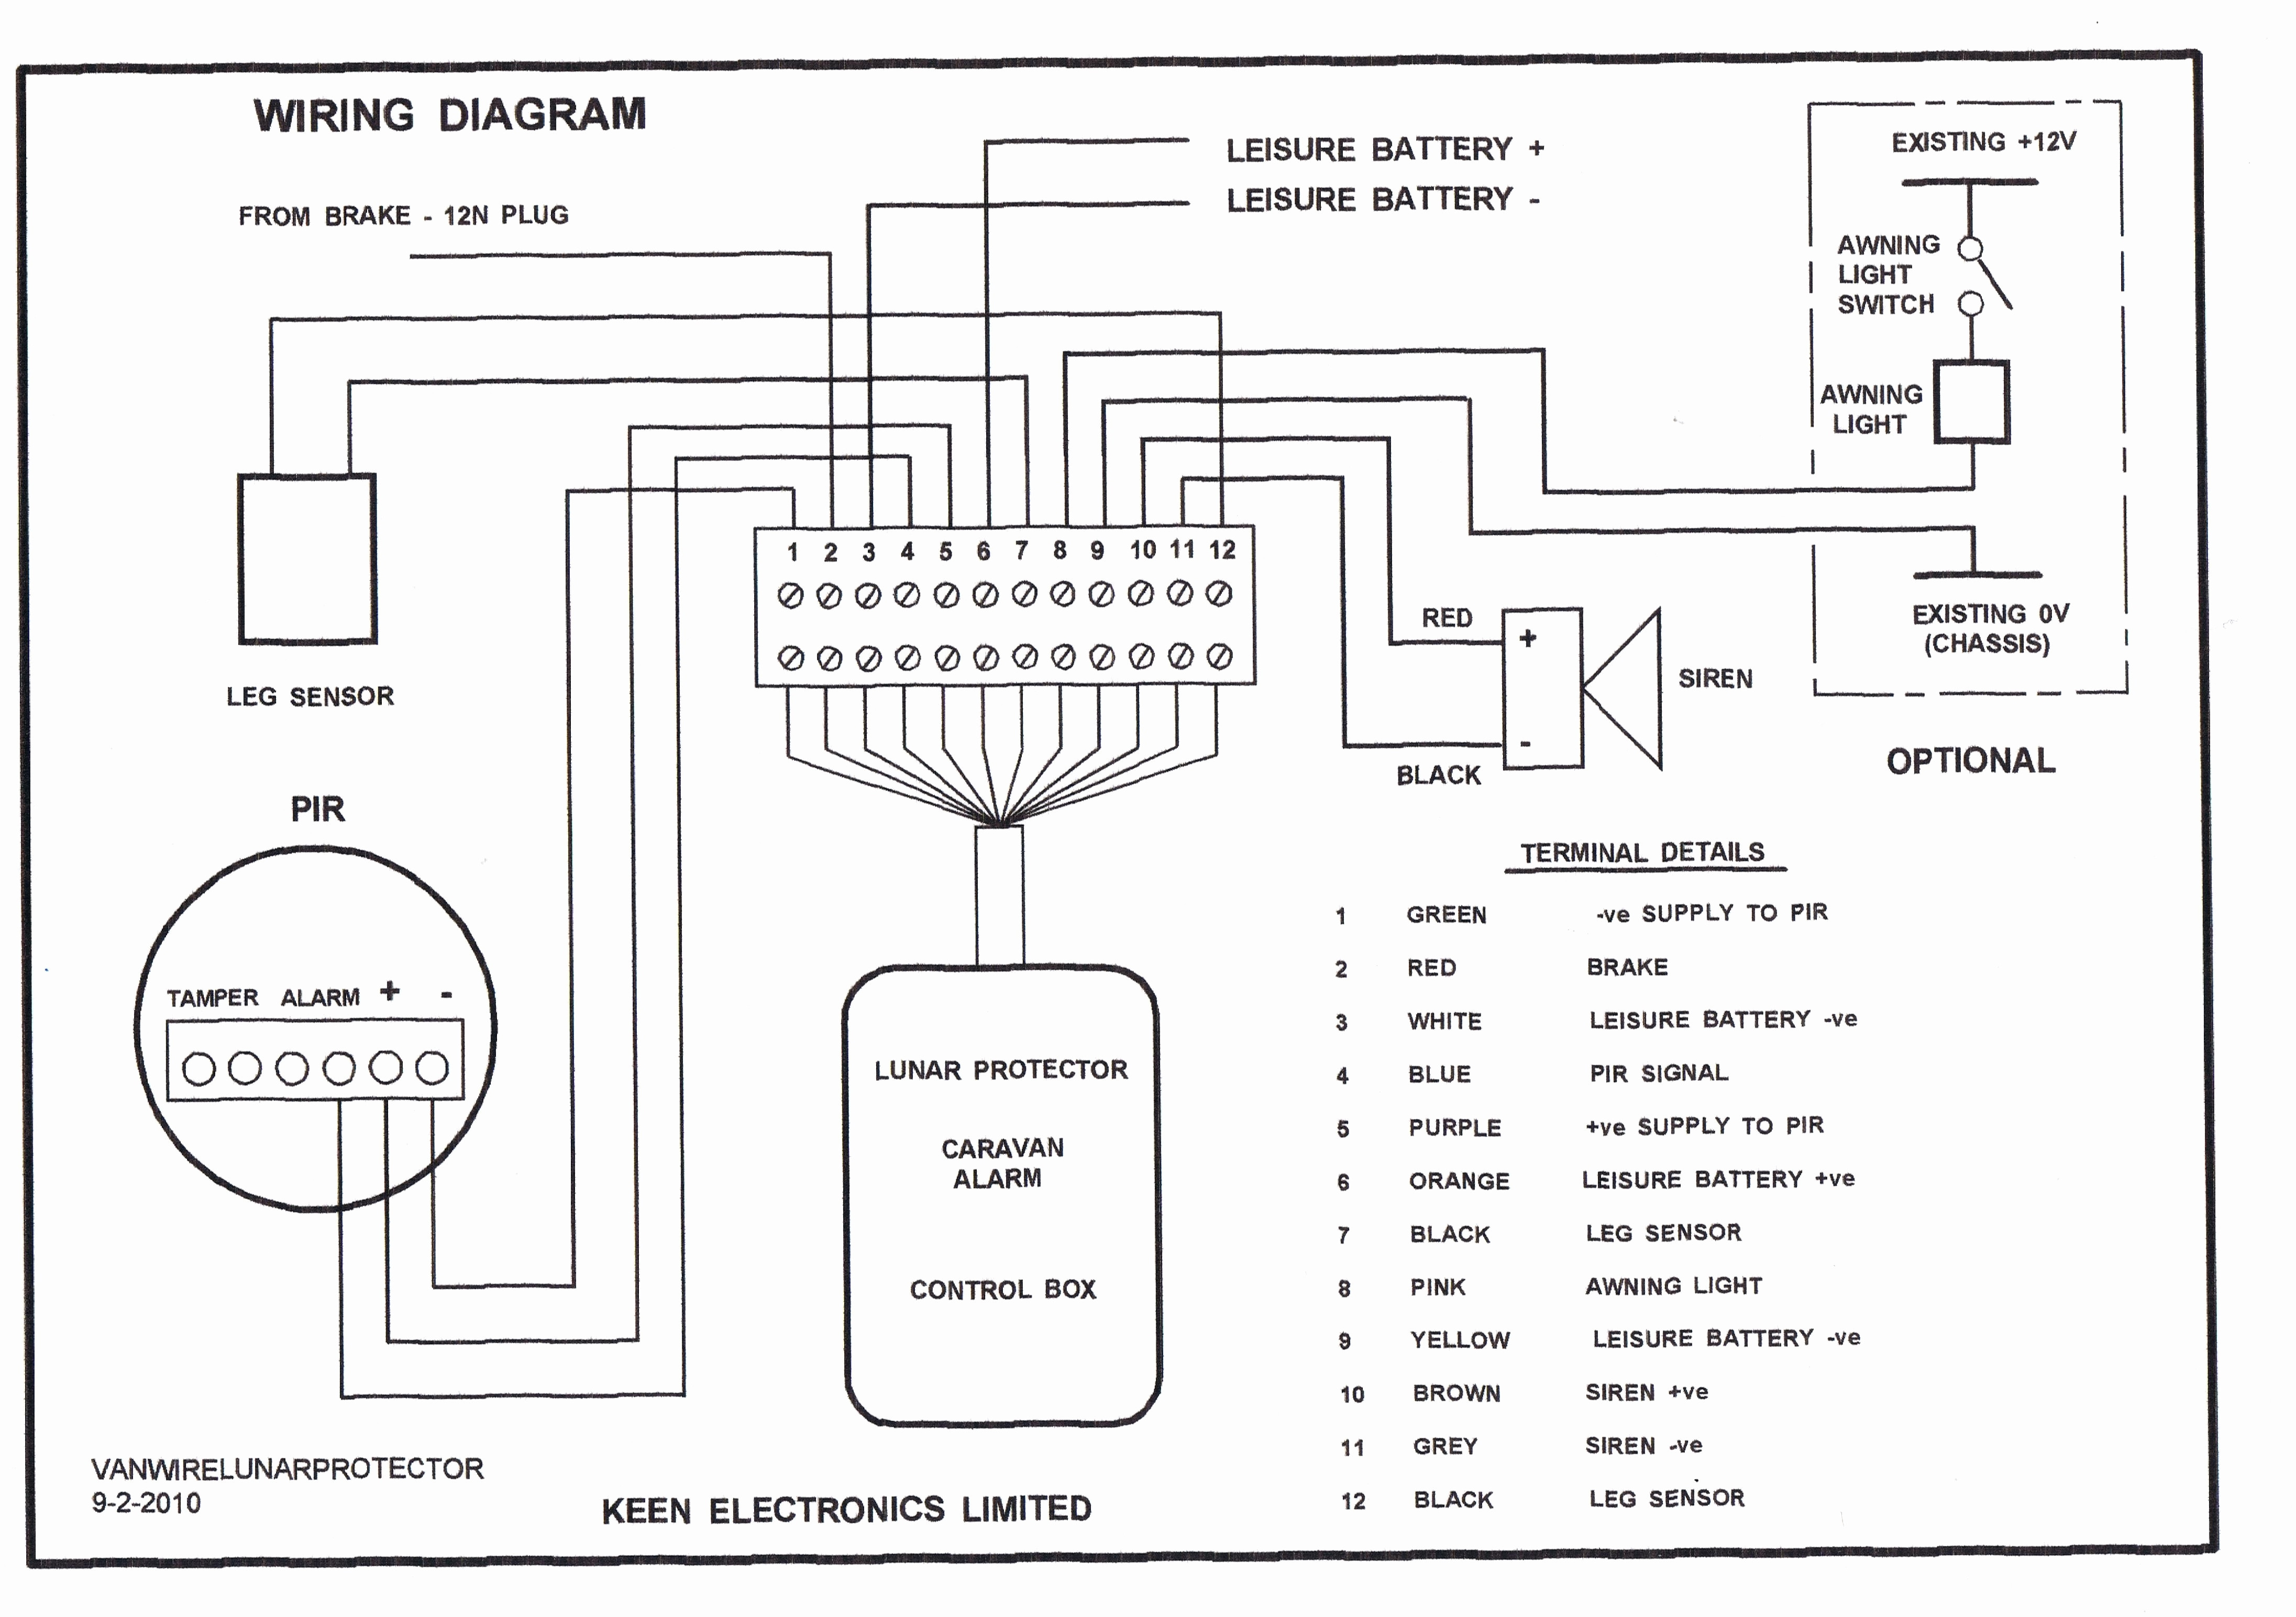 Samsung Security Camera Wiring Diagram | Free Wiring Diagram on surveillance diagram, ip camera system diagram, software security diagram, security camera room, sony backup camera circuit diagram, internet security diagram, security camera connectors, ip camera installation diagram, security camera positioning home diagram, security camera blueprints, security camera plug, security cam wiring, security camera schematic diagram, security camera footage, security camera power, camera parts diagram, security camera installation, how a camera works diagram, security camera adjustments, security system wiring diagrams,